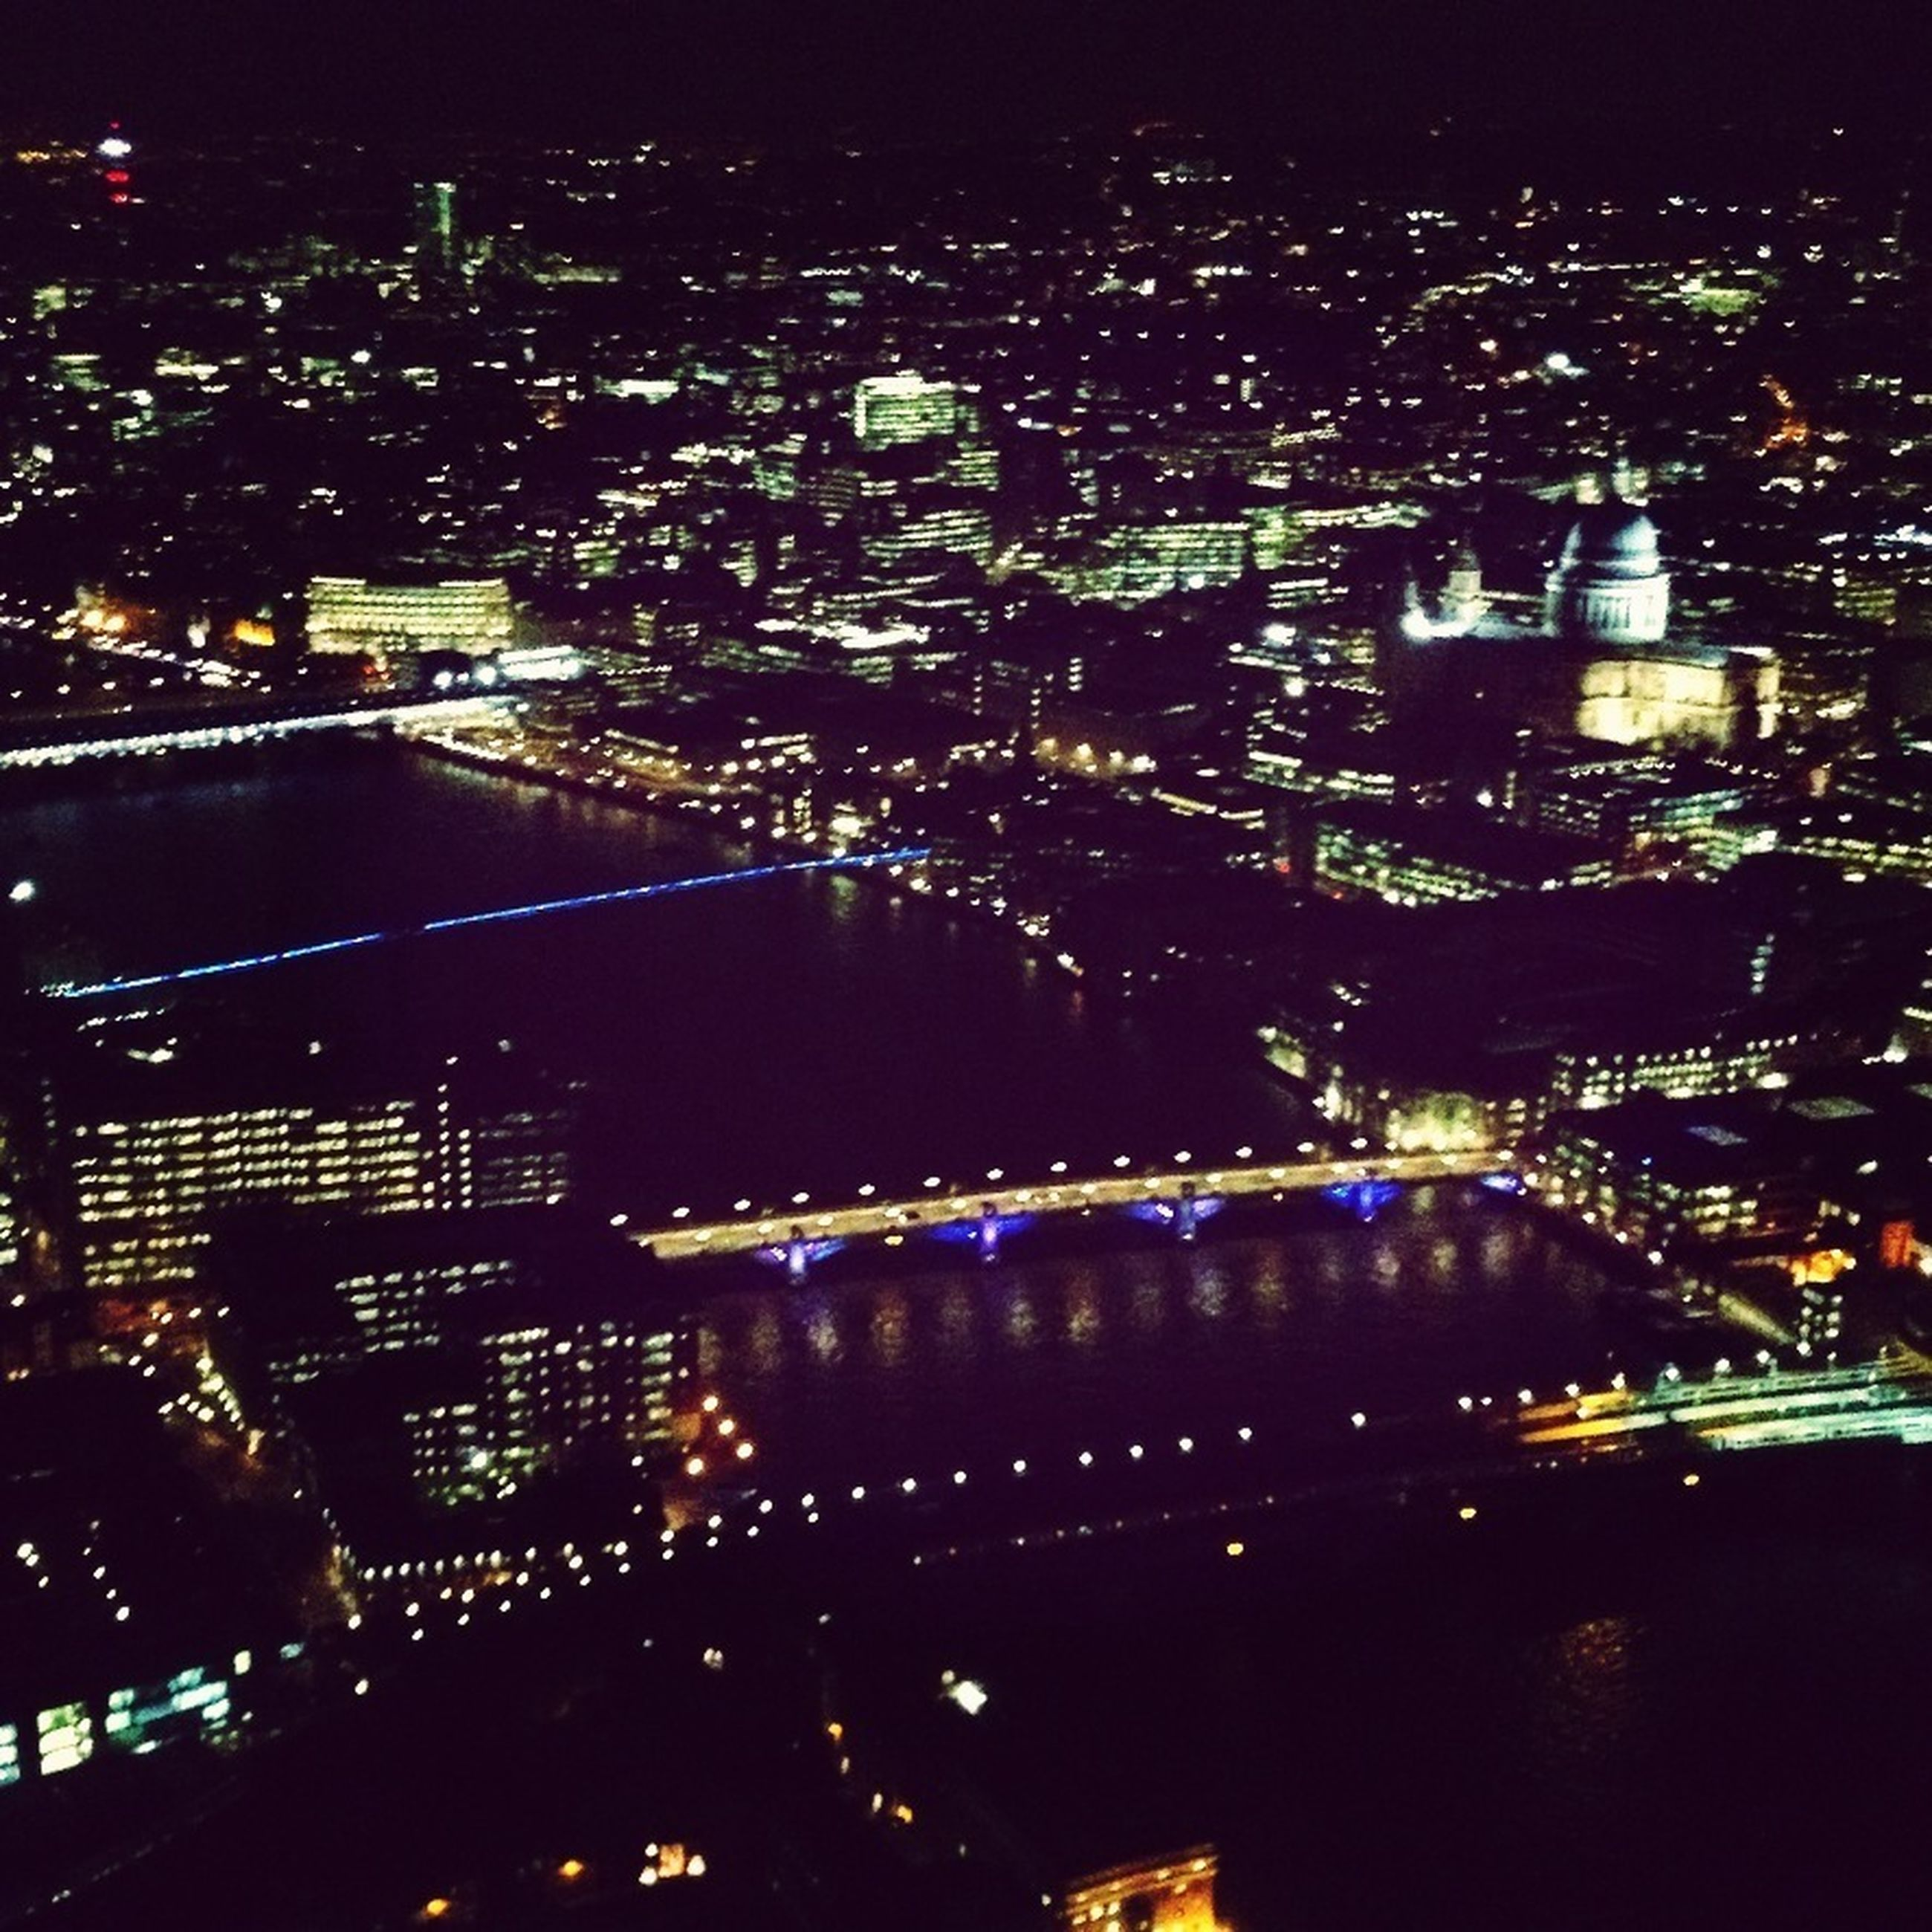 illuminated, night, city, cityscape, building exterior, architecture, built structure, high angle view, skyscraper, crowded, city life, road, office building, modern, aerial view, capital cities, tall - high, tower, street, transportation